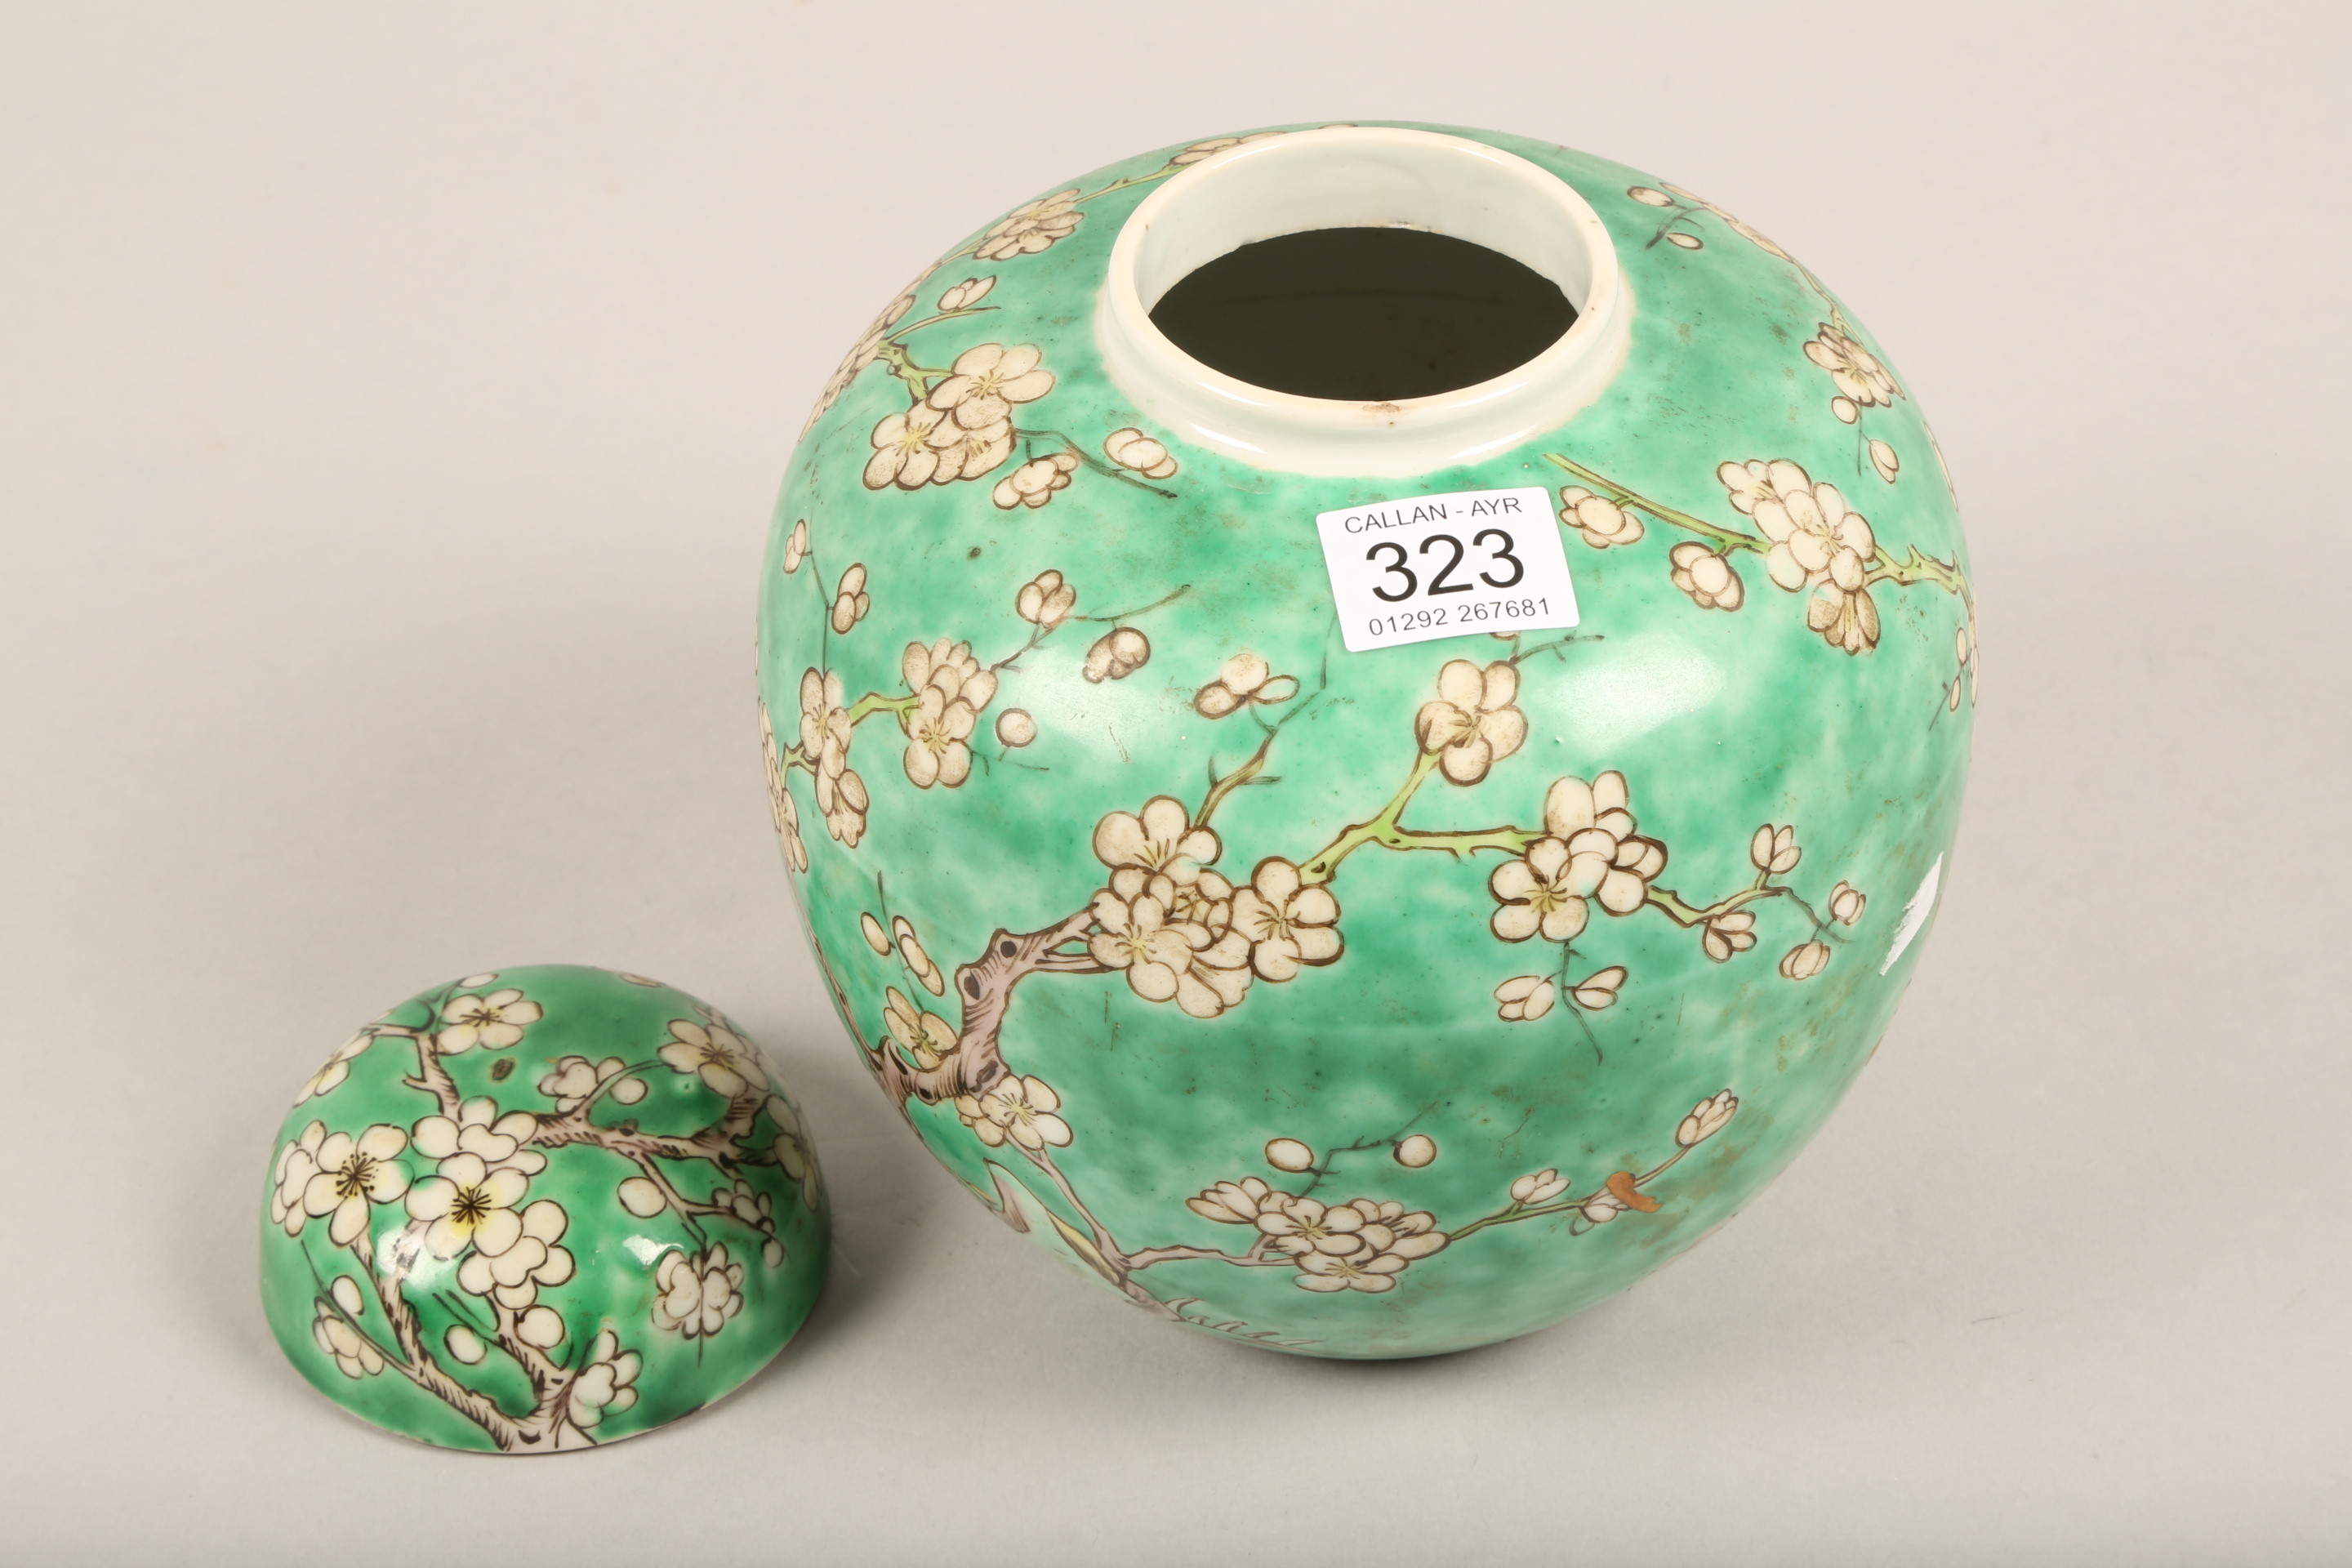 19th/20th century Chinese ginger jar and cover, green ground decorated with birds in a flowering - Image 6 of 6